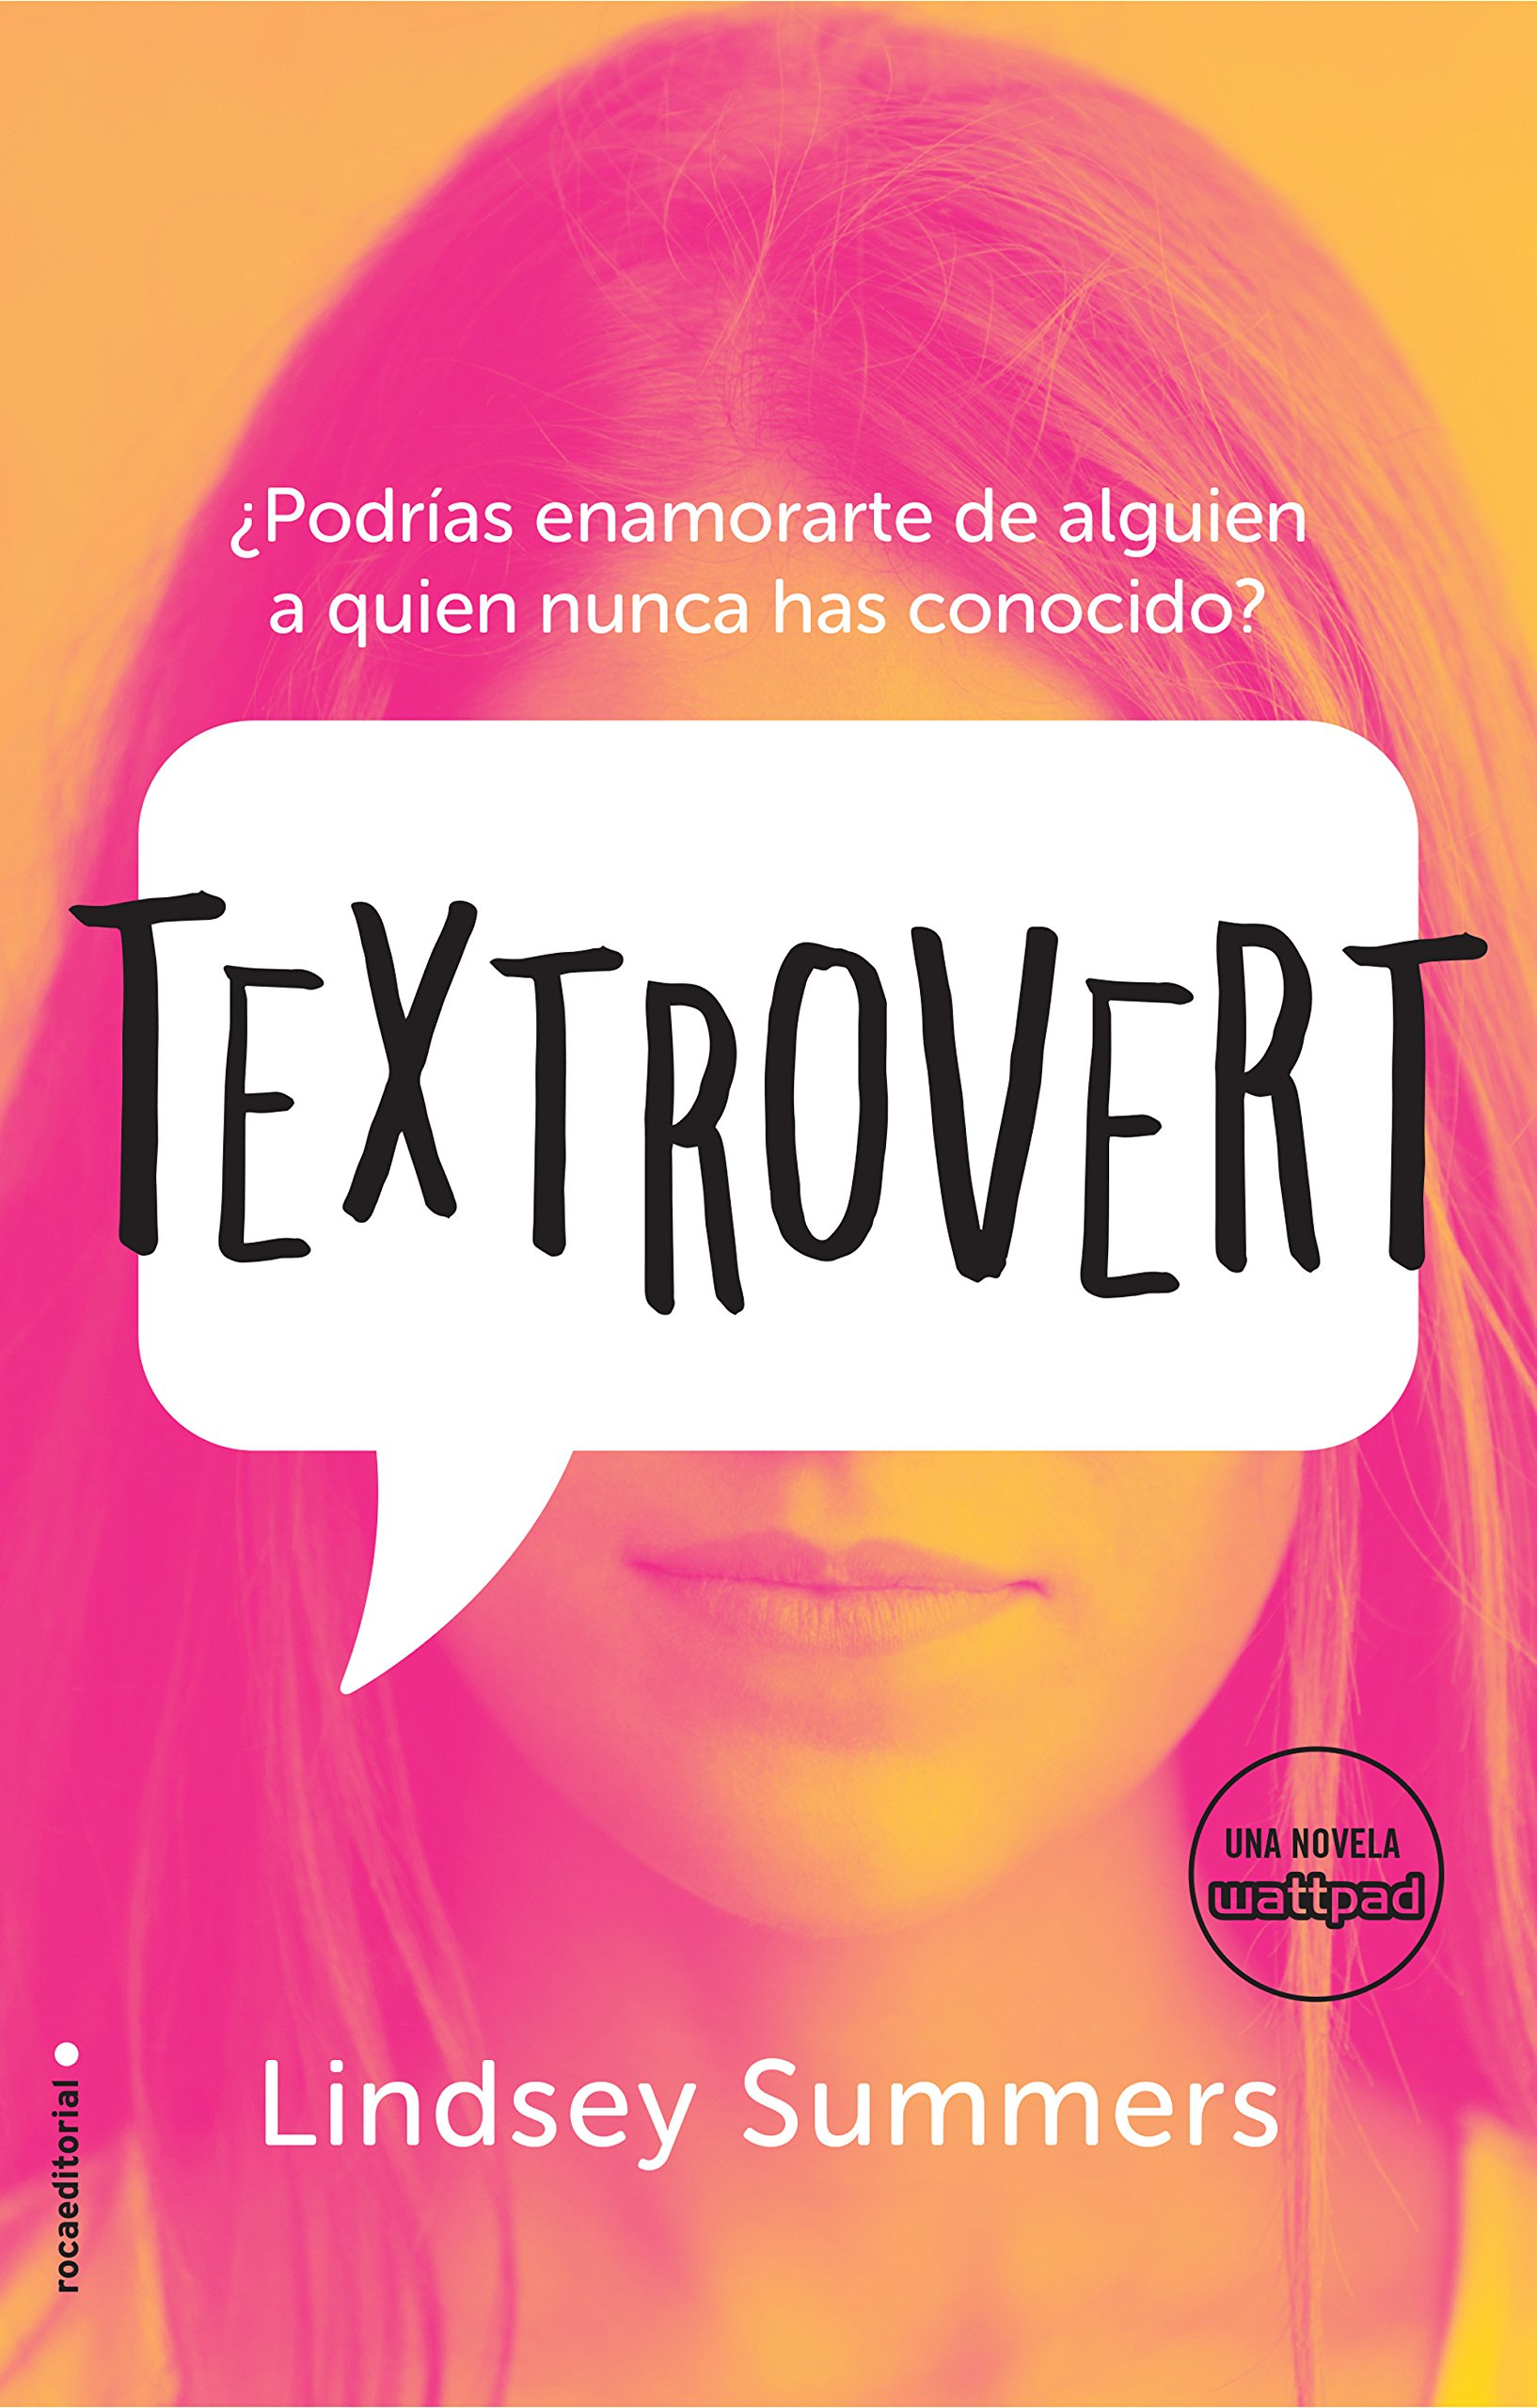 Amazon.com: Textrovert (Spanish Edition) (9788416700844): Lindsey Summers: Books